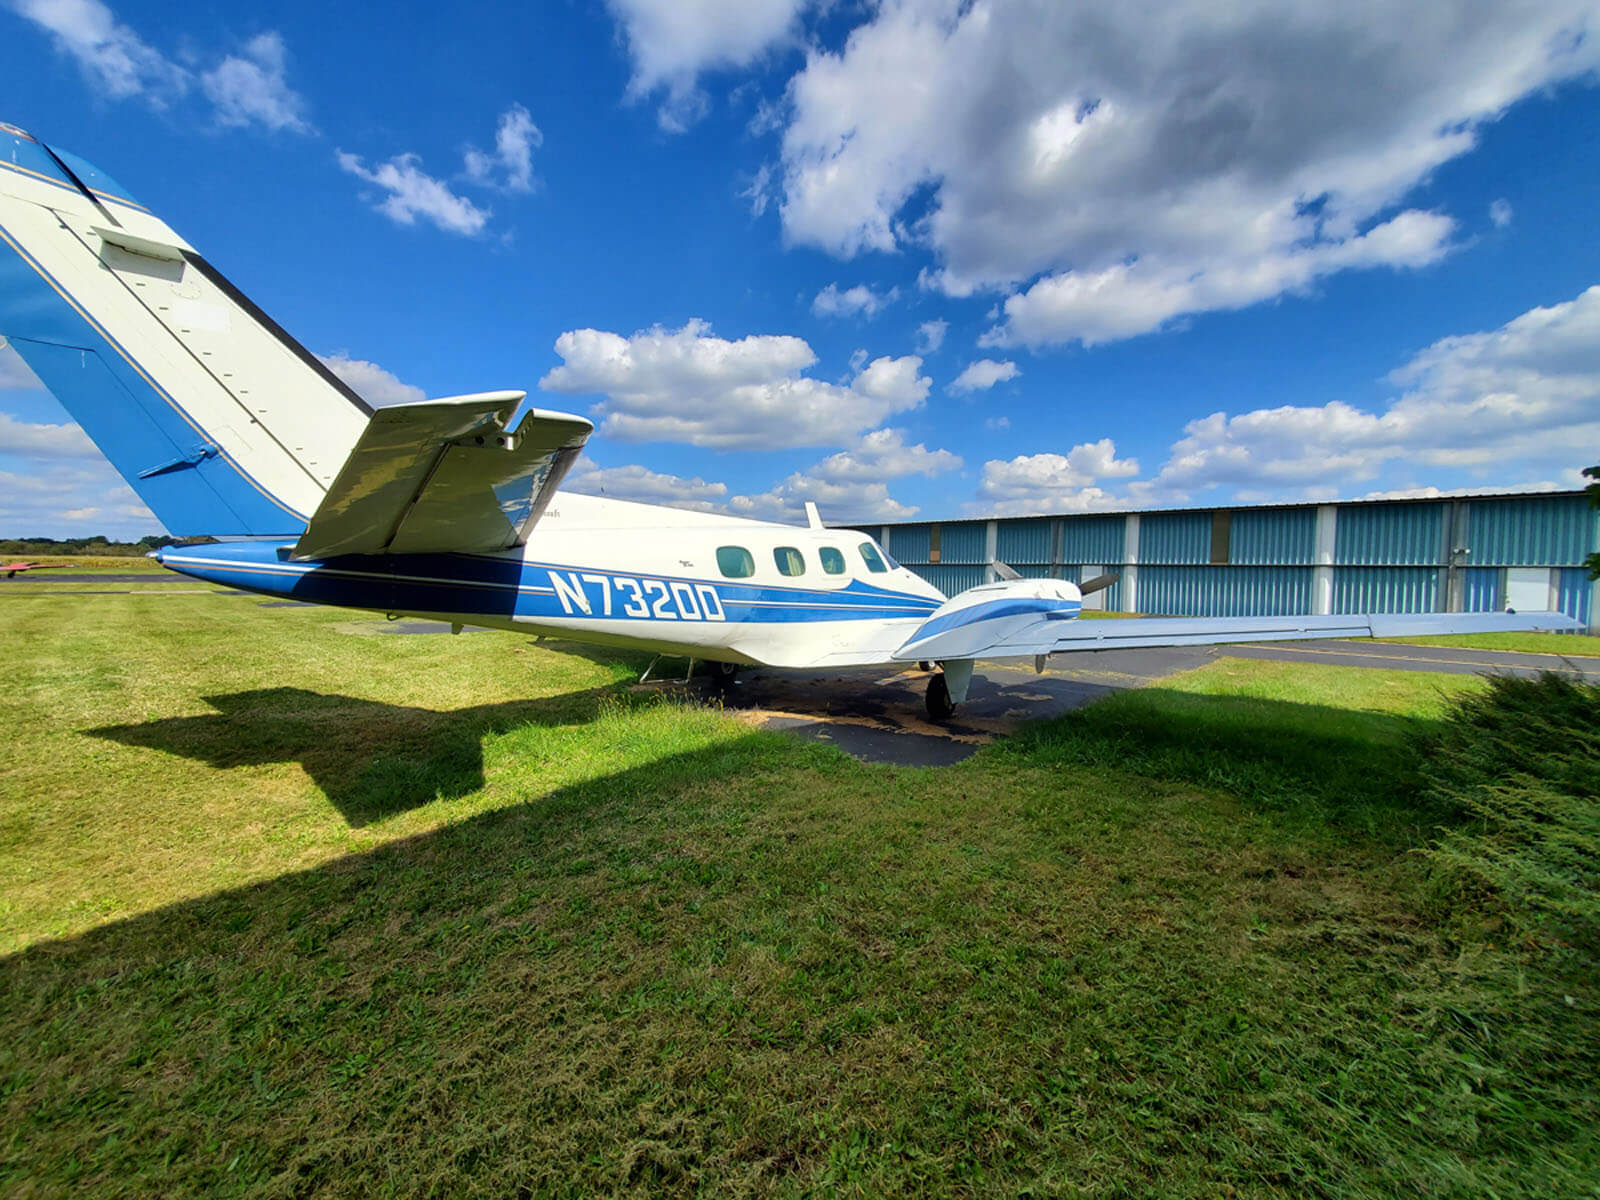 1969 Beech Duke FOR SALE at Princeton Airport ~ Contact Ken Nierenberg for details 609-731-4628